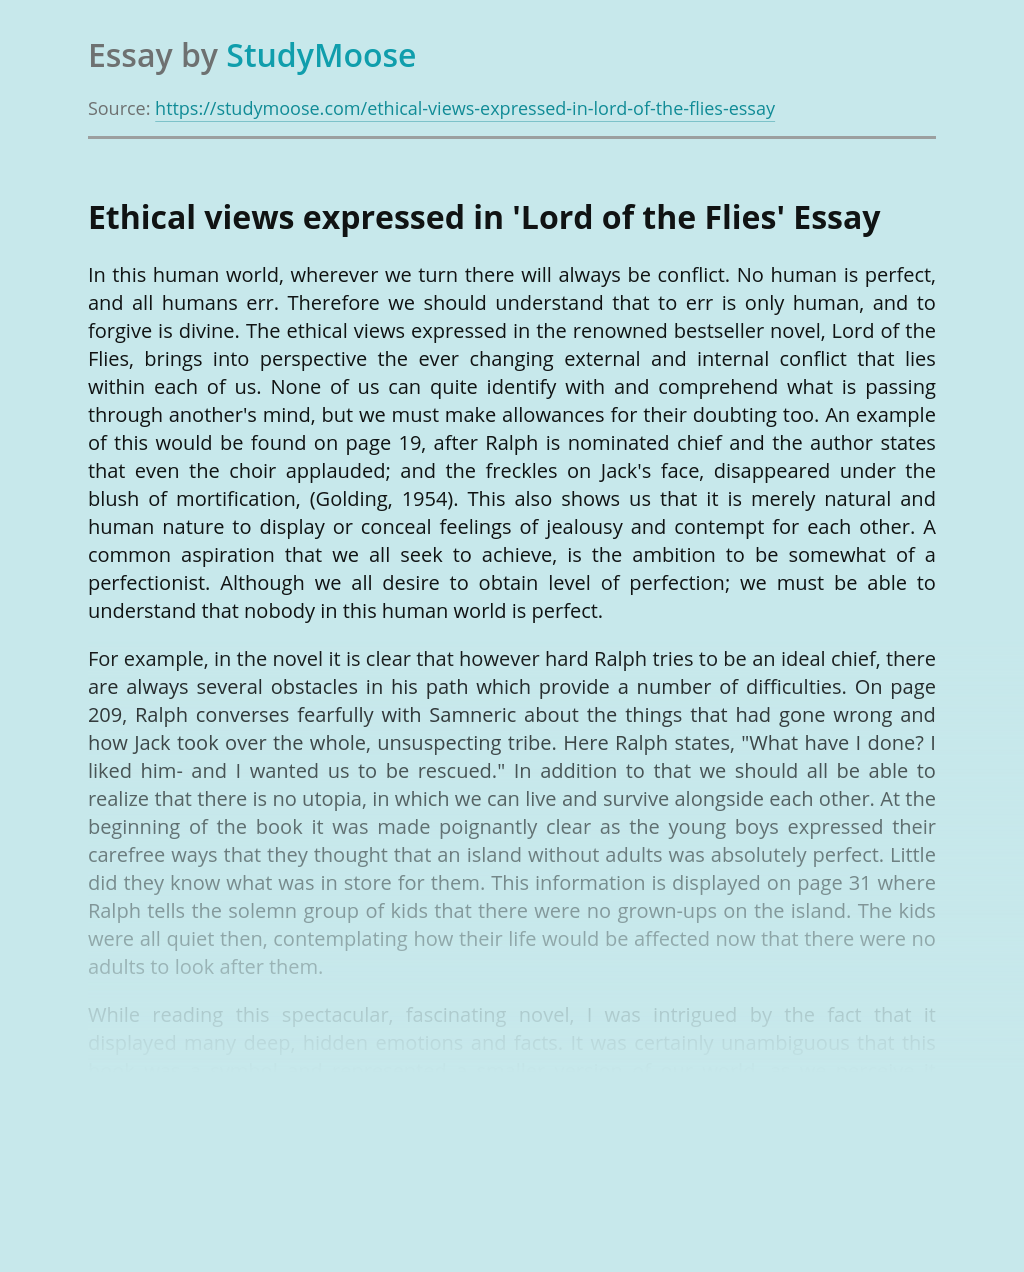 Ethical views expressed in 'Lord of the Flies'